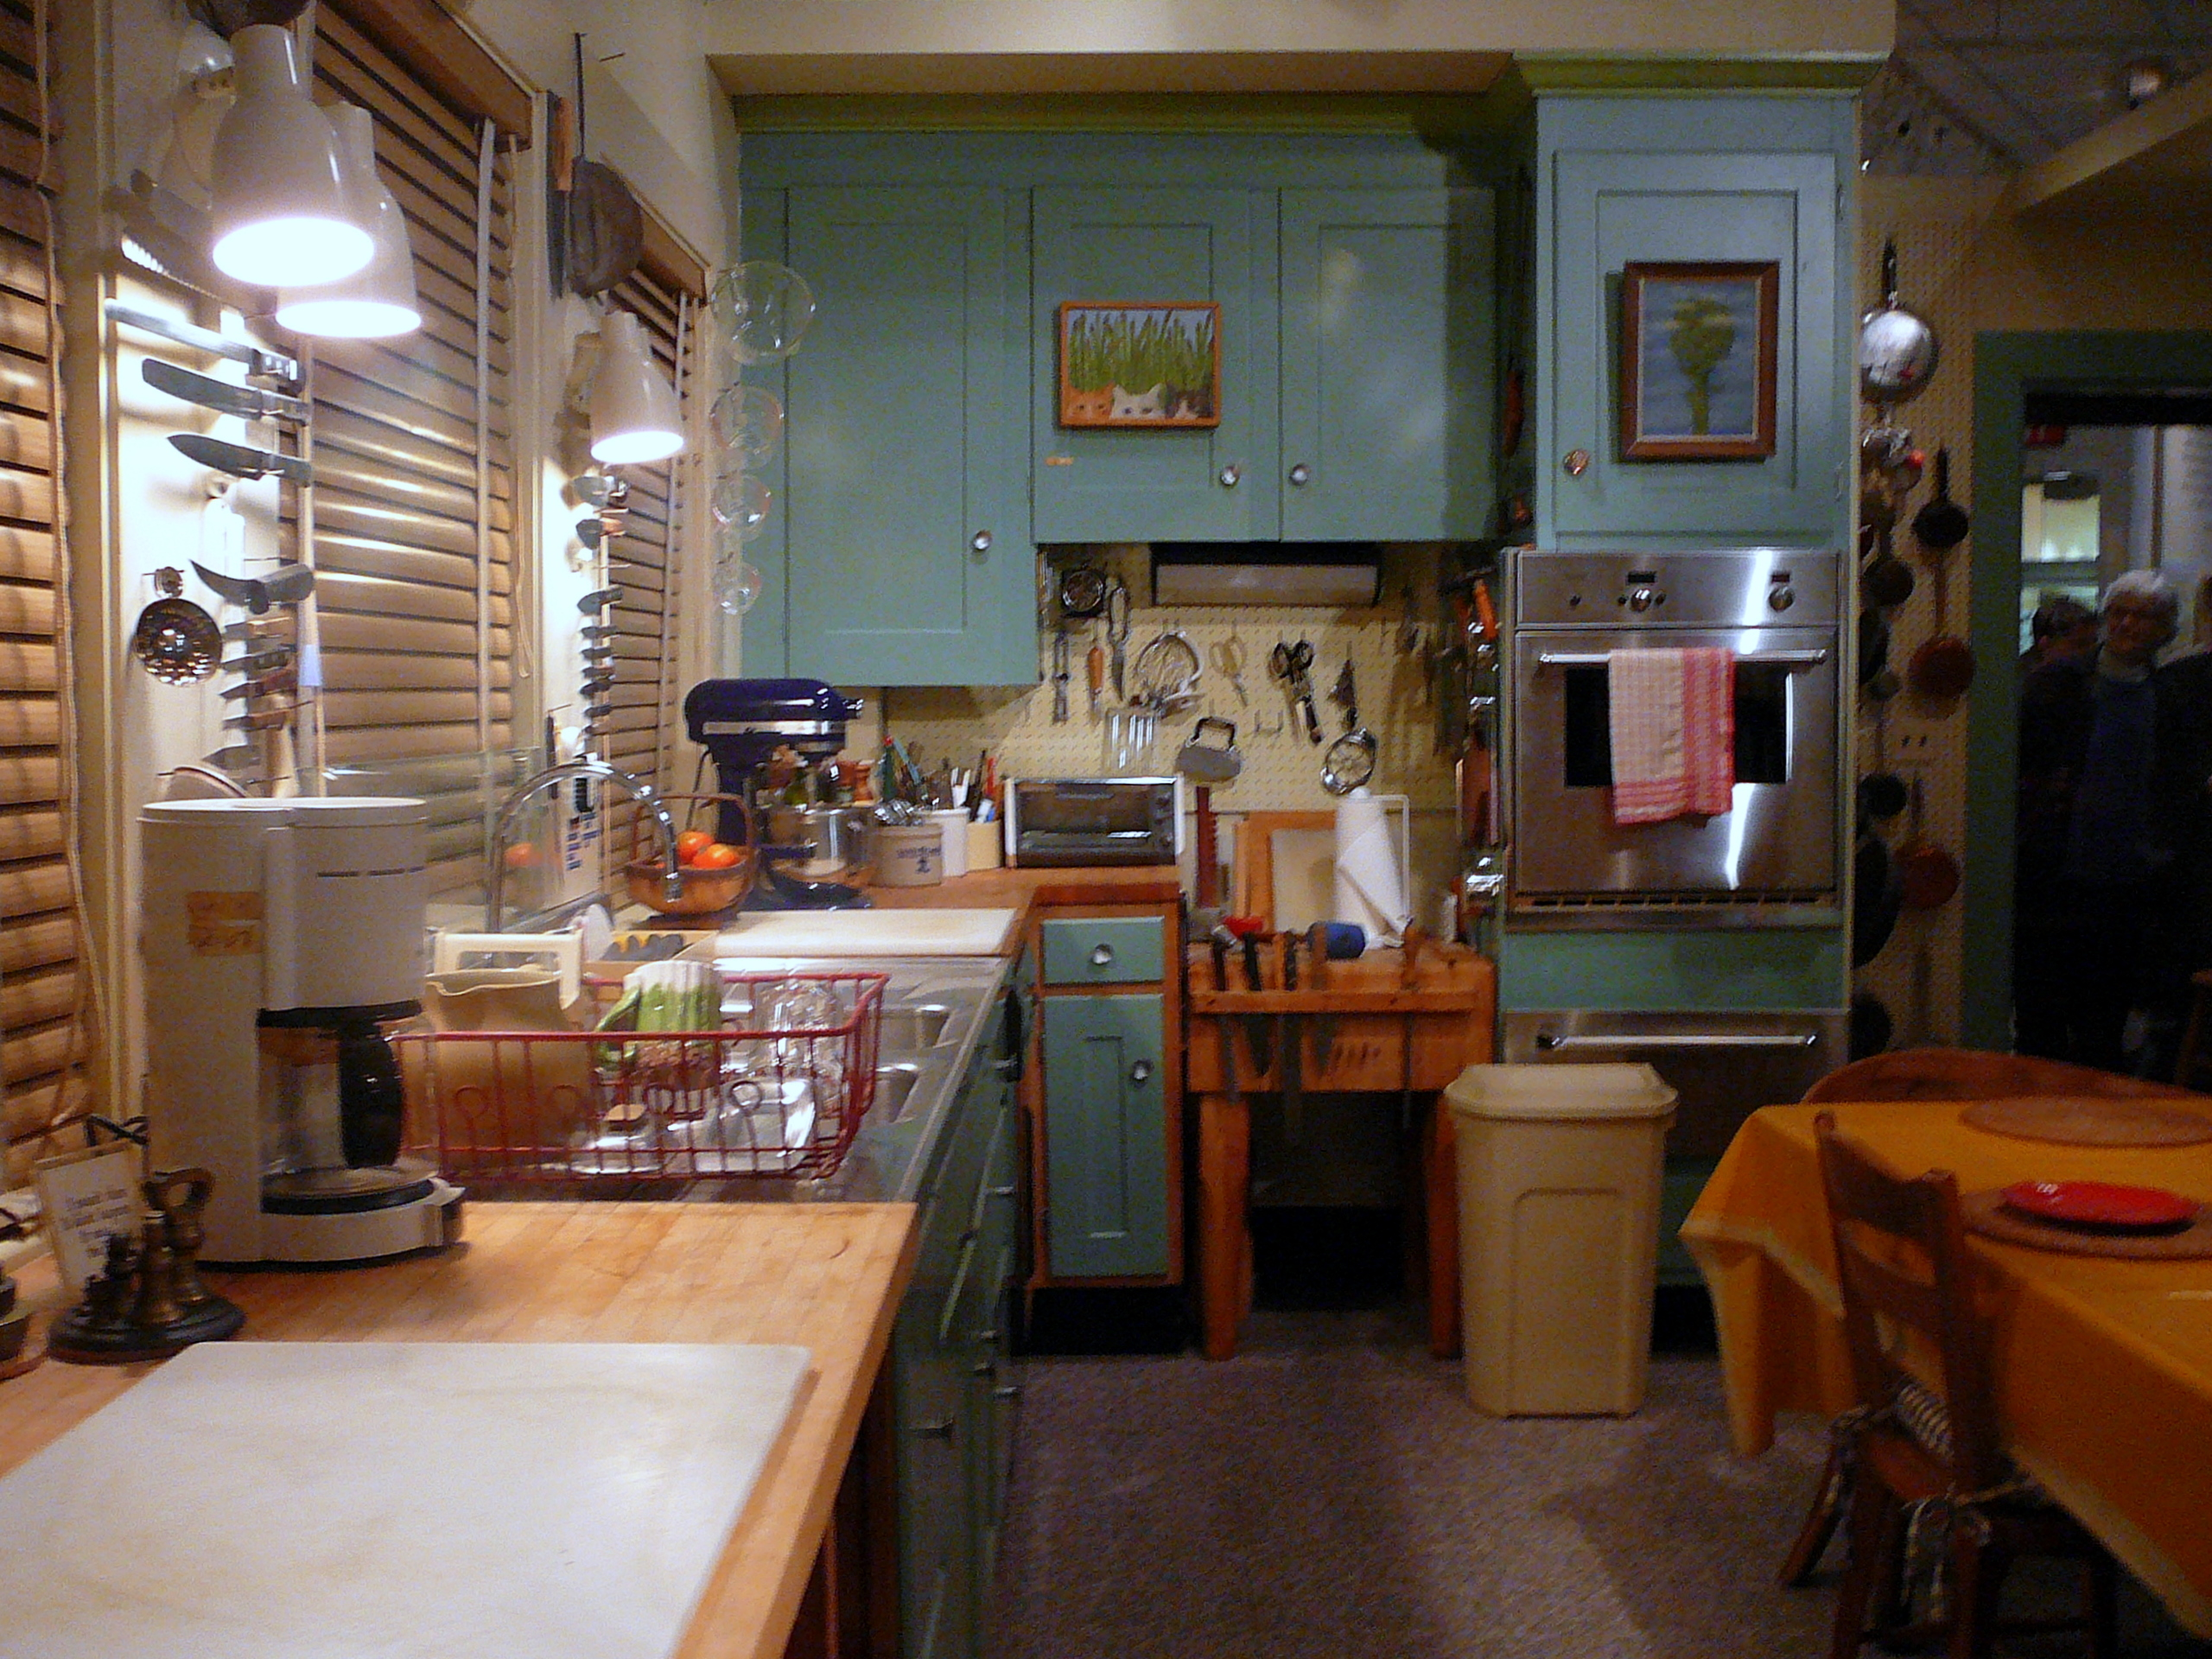 Julia Childs Kitchen at the Smithsonian